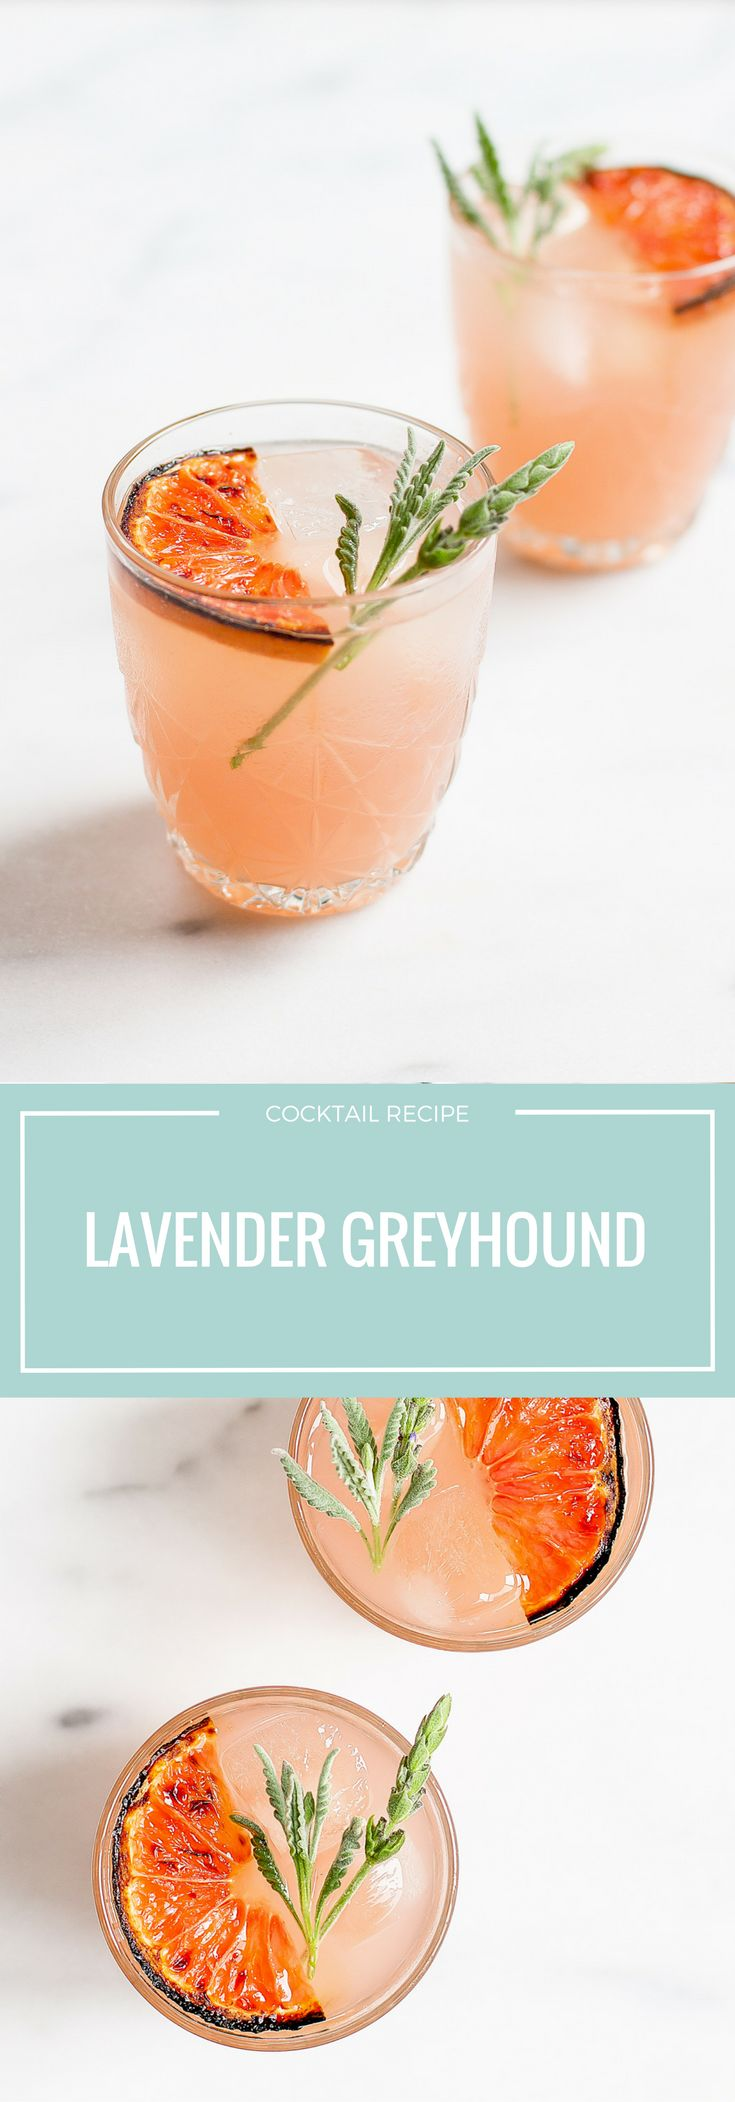 Easter Brunch Cocktail: A two ingredient recipe for the prettiest, easiest spring cocktail ever. Lavender infused vodka and brûléed grapefruit come together in a drink that guests won't forget.